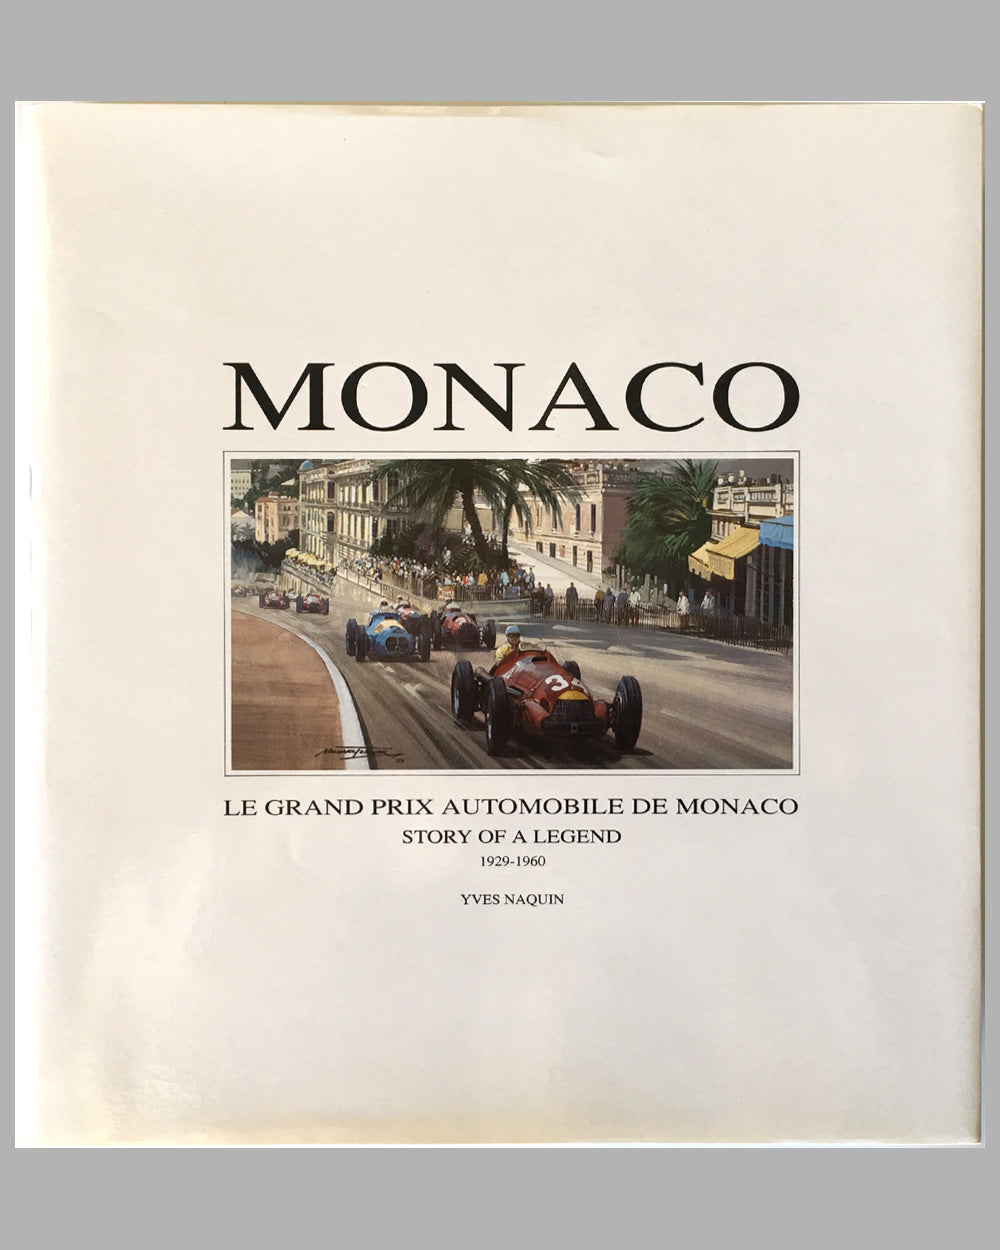 Le Grand Prix Automobile de Monaco – Story of a Legend 1929-1960 book by Yves Naquin